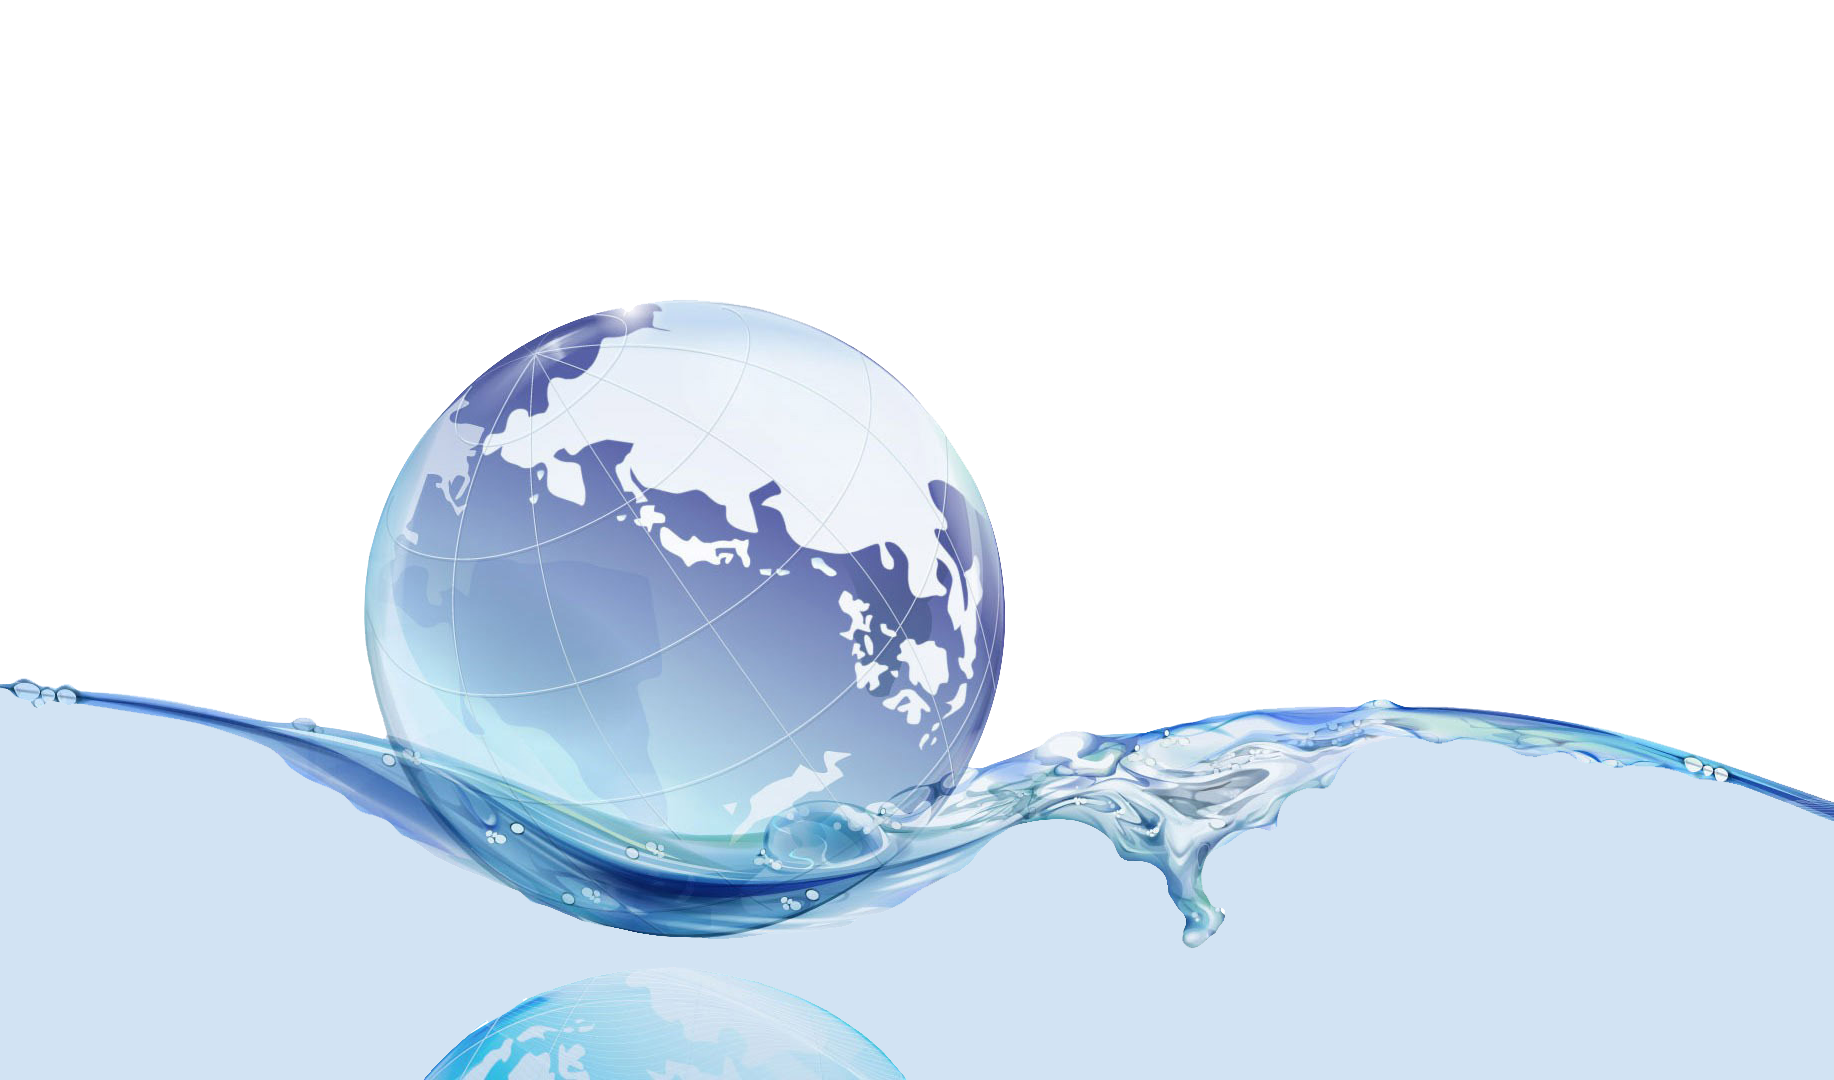 Image of a globe floating on water suggesting world water experts